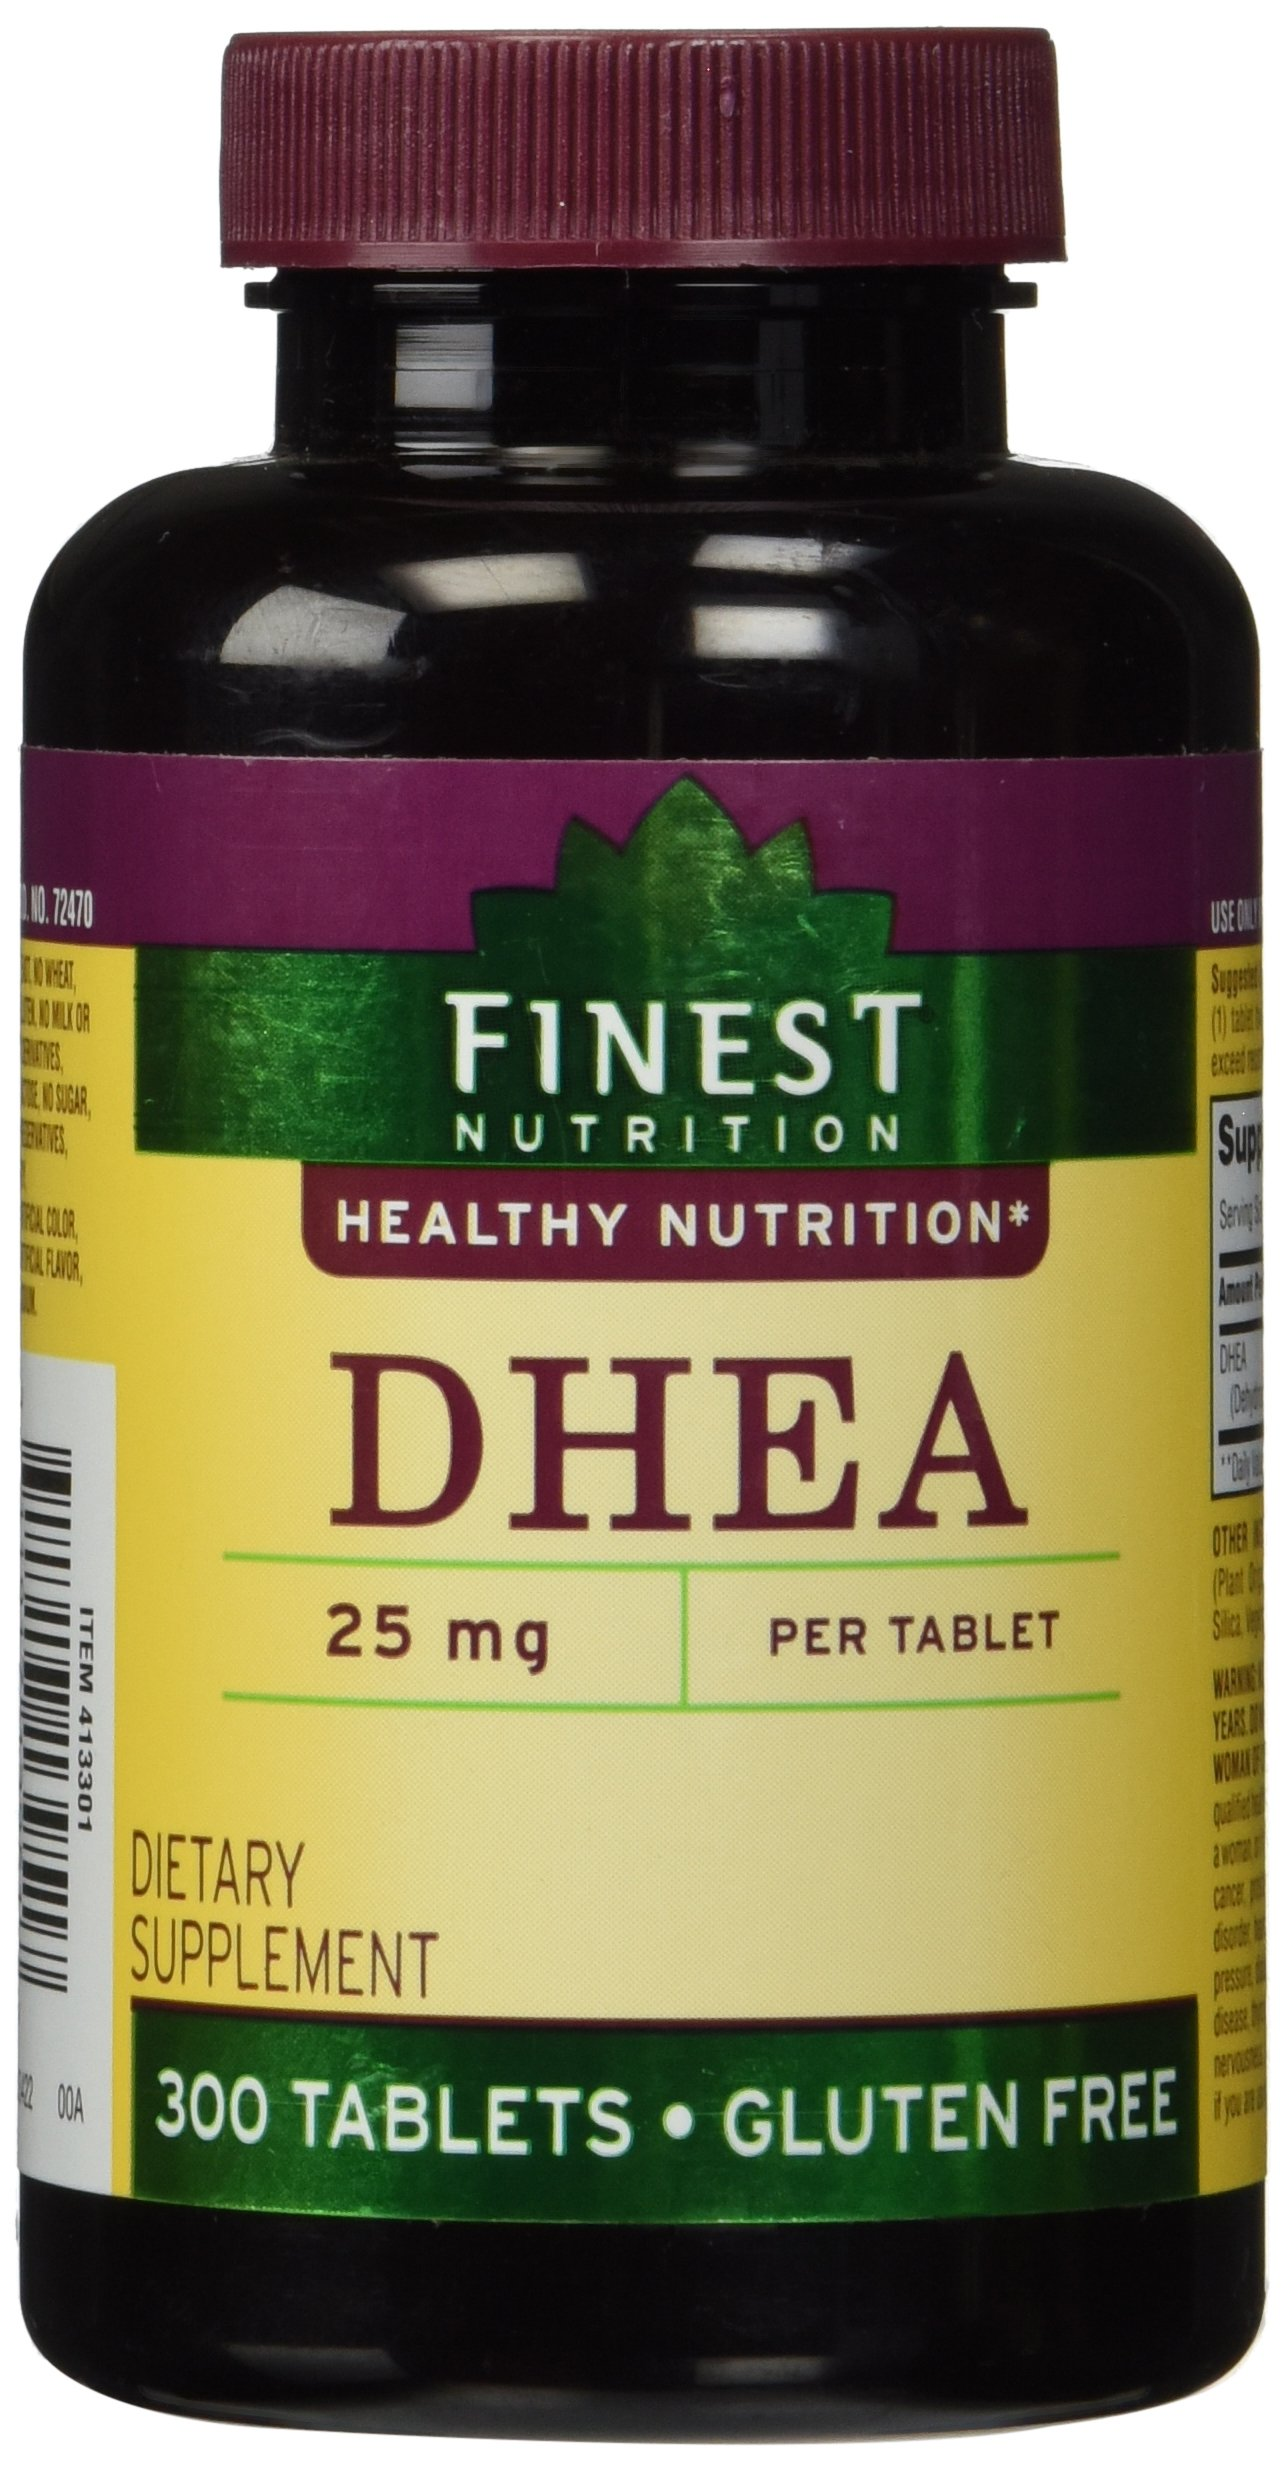 Amazon.com: Finest Nutrition DHEA 25mg Tablets 300 ea: Health & Personal Care